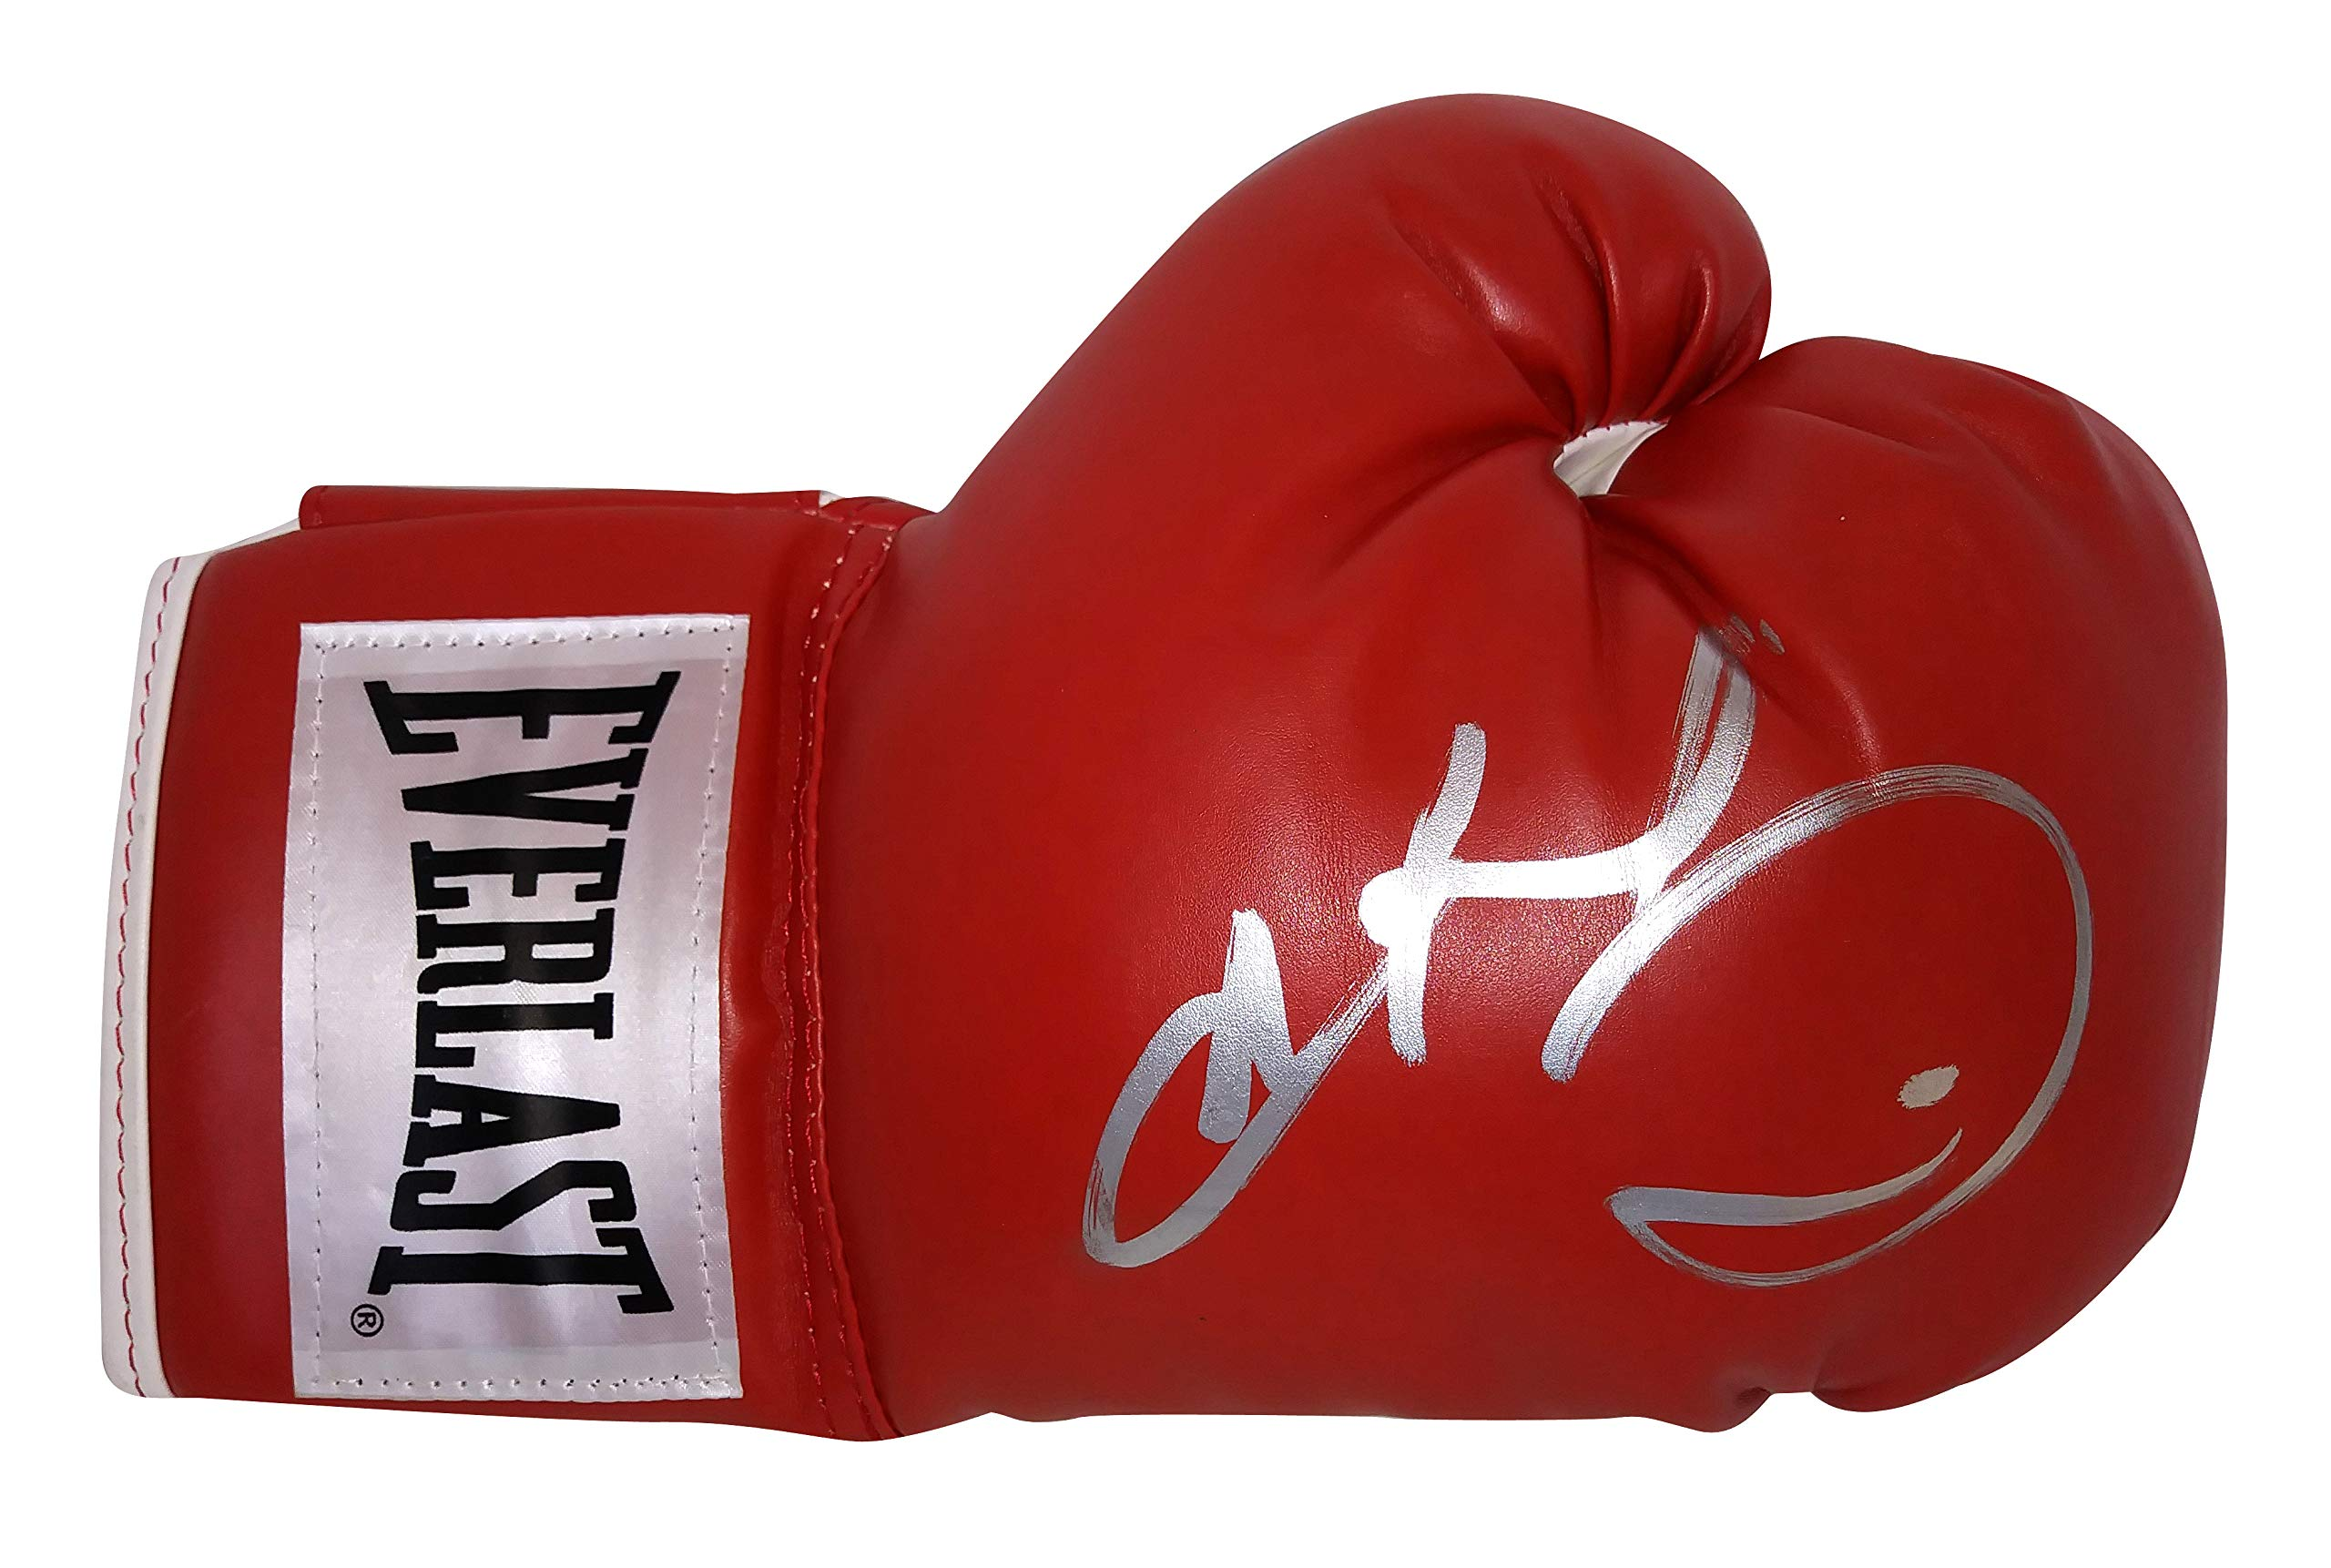 Sugar Ray Leonard Autographed Hand Signed Everlast Red Boxing Glove with Proof Photo of Signing, International Boxing Hall of Fame, COA